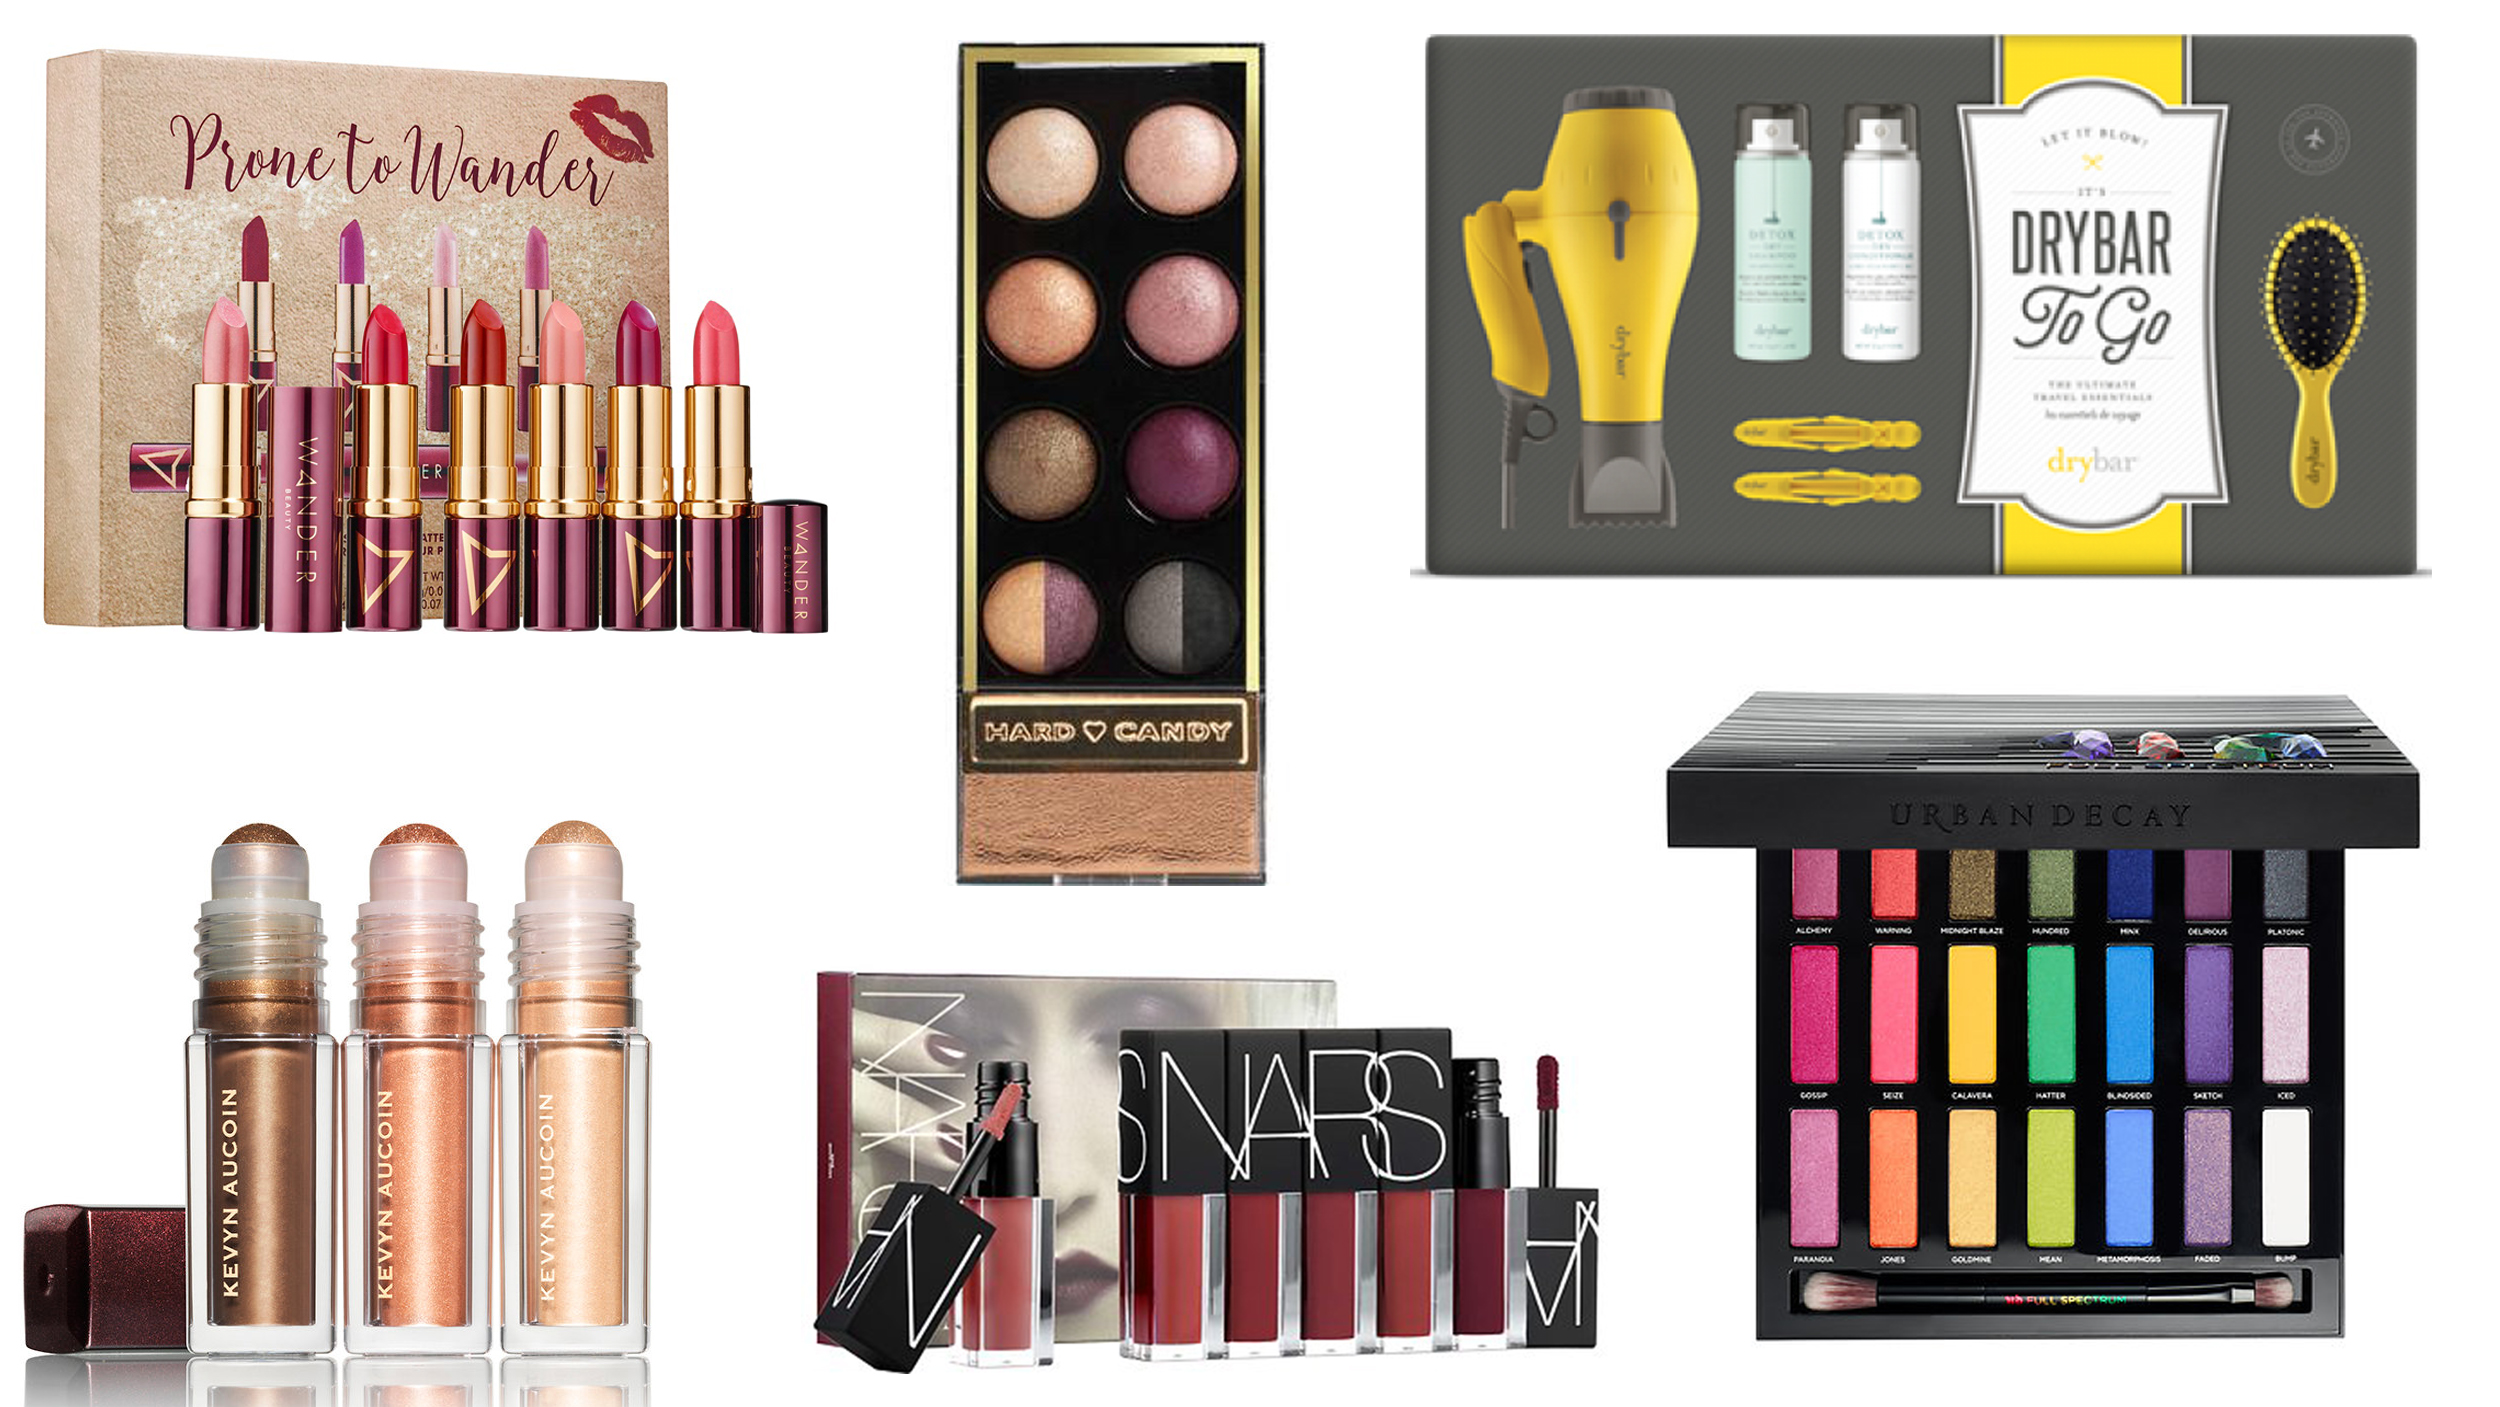 Gift ideas for her: Beauty kits, makeup